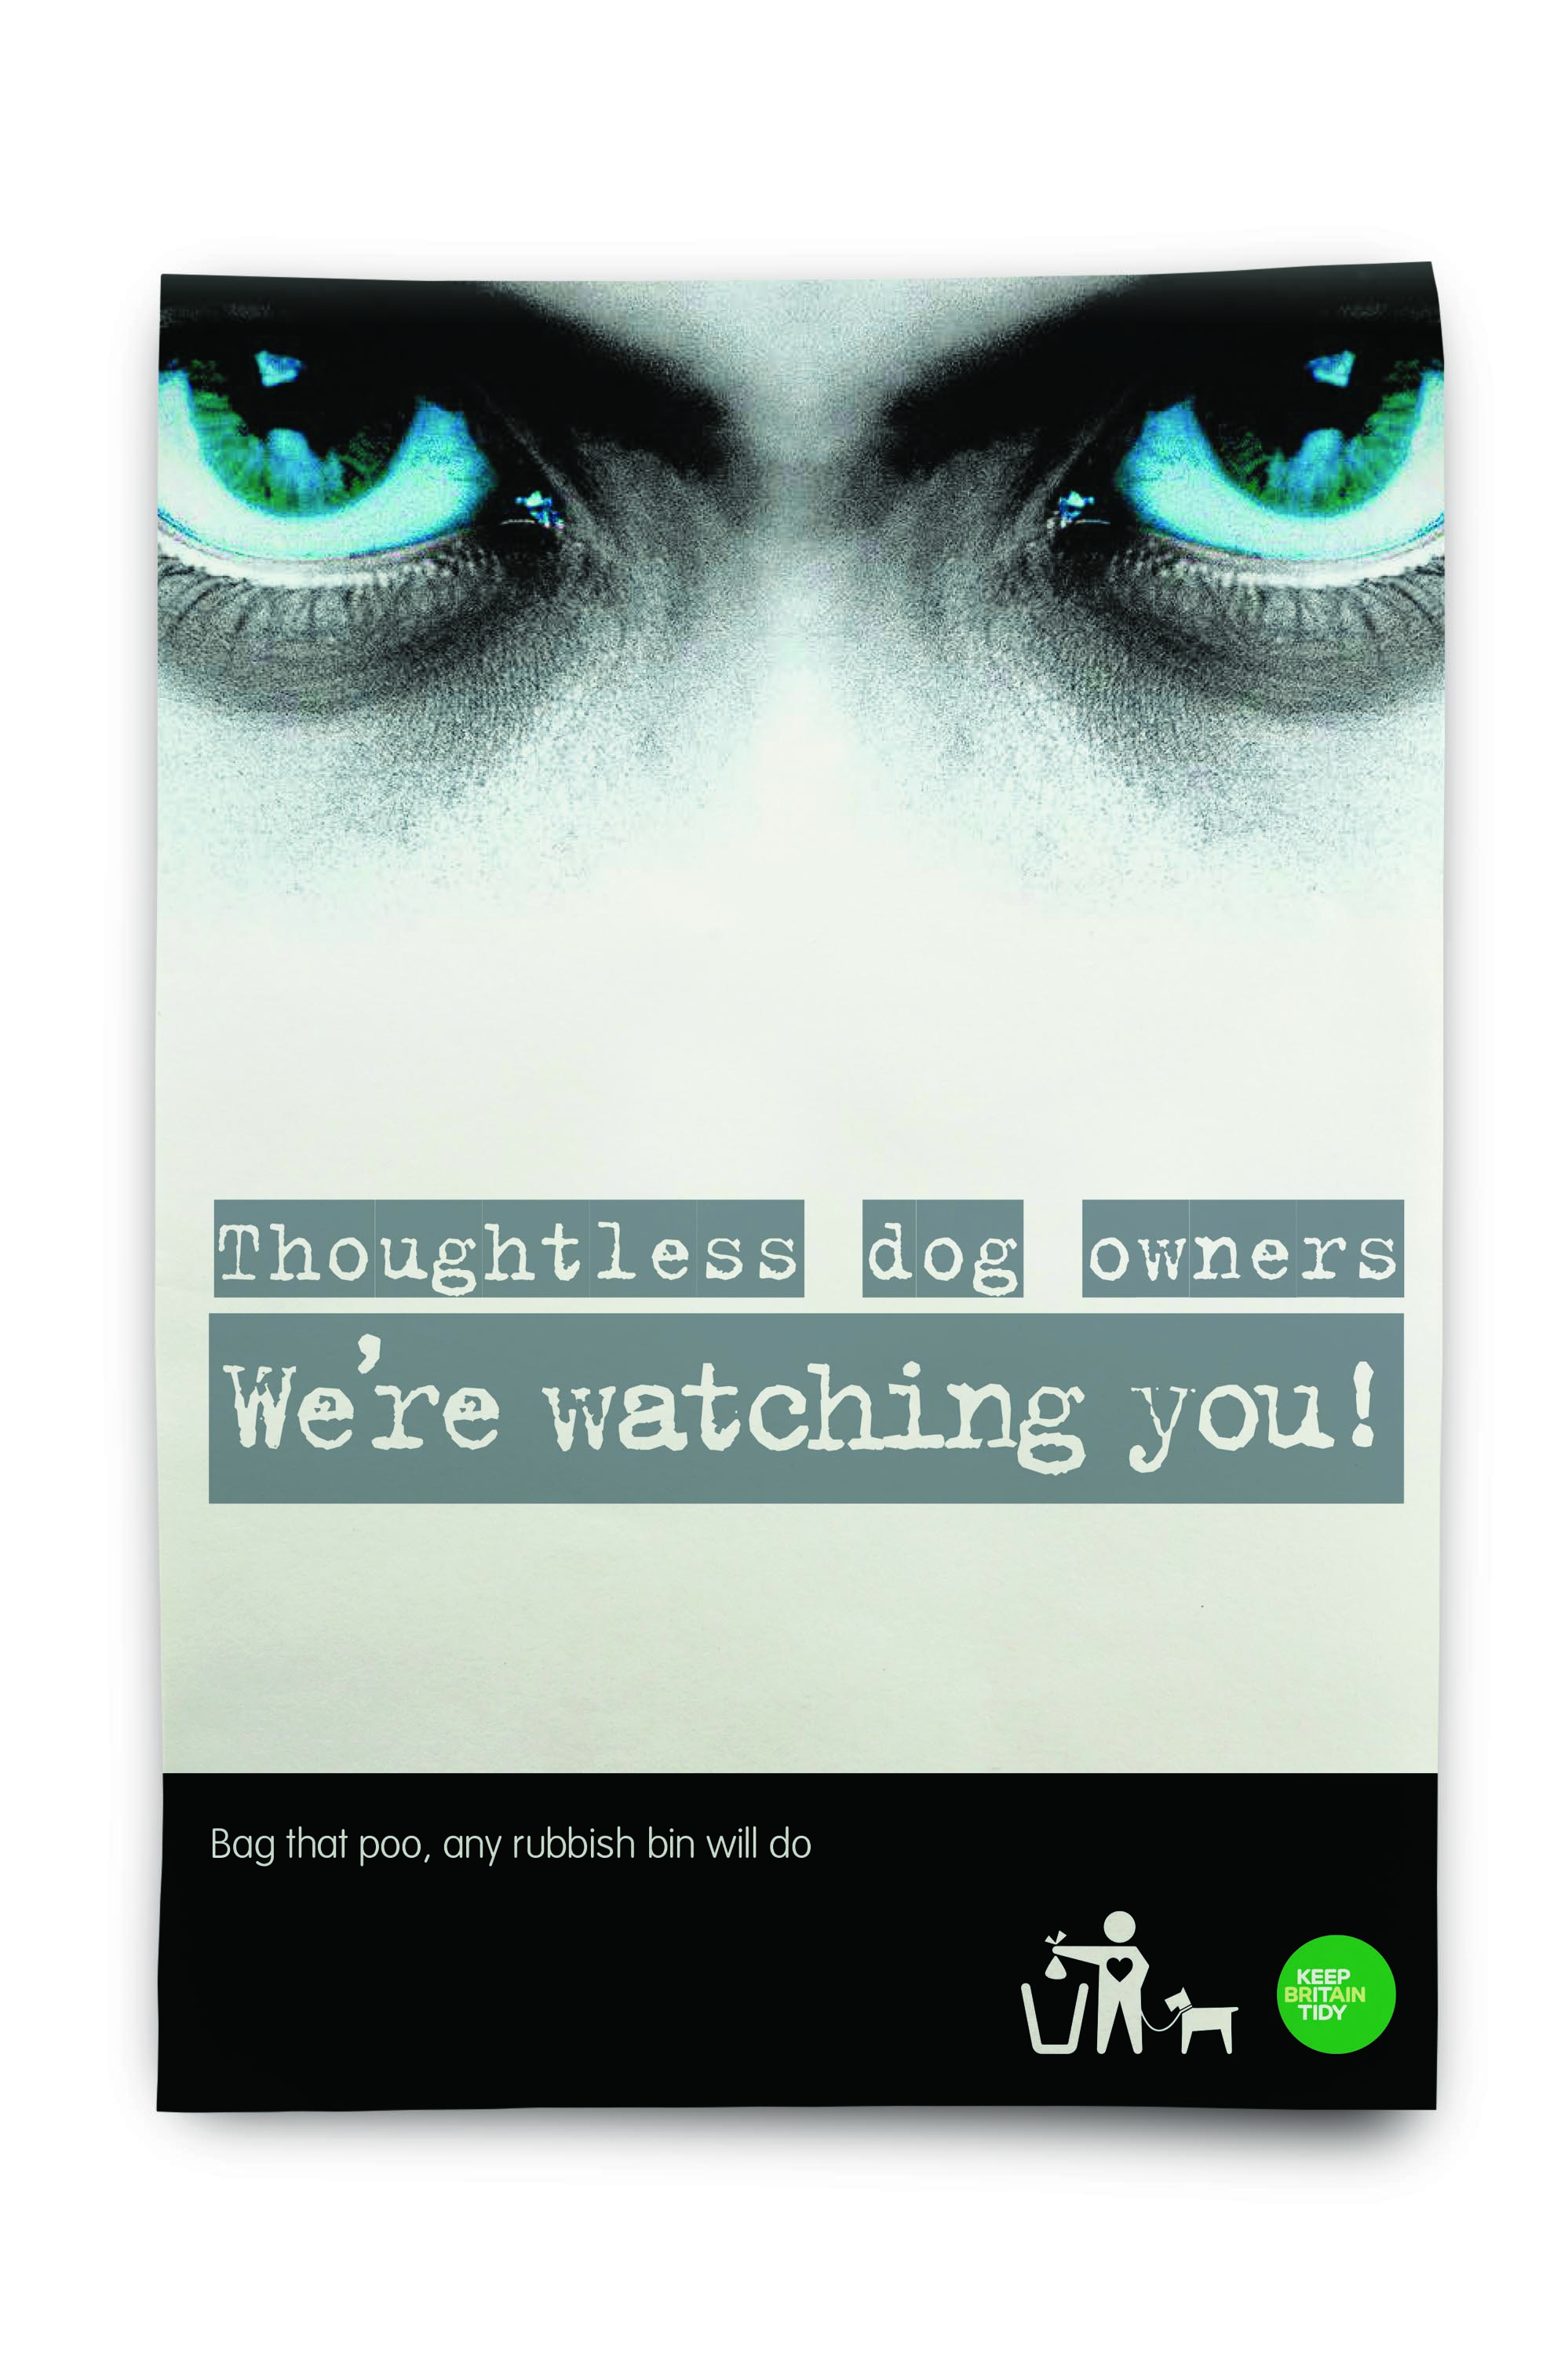 An image of a We're Watching You campaign poster